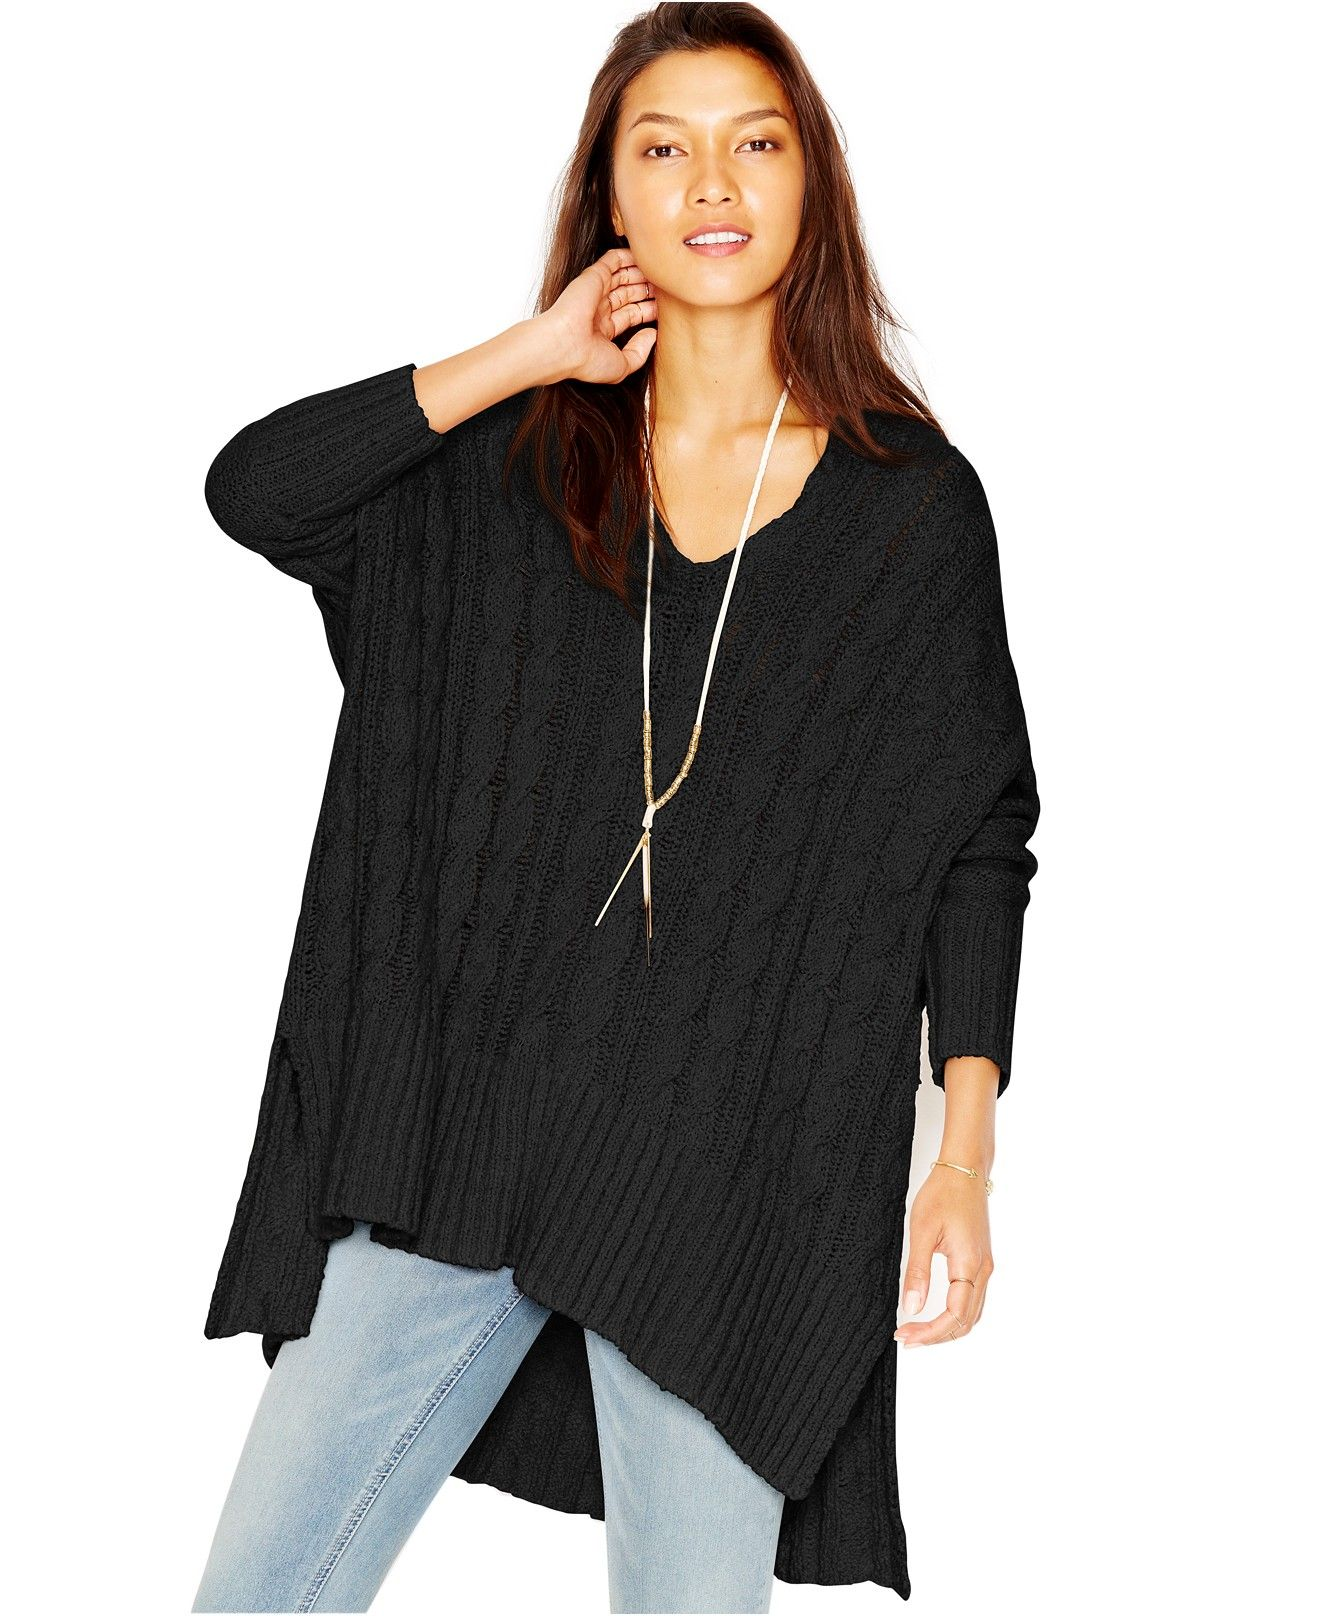 Free People Oversized Cable-Knit Sweater - Sweaters - Women ...